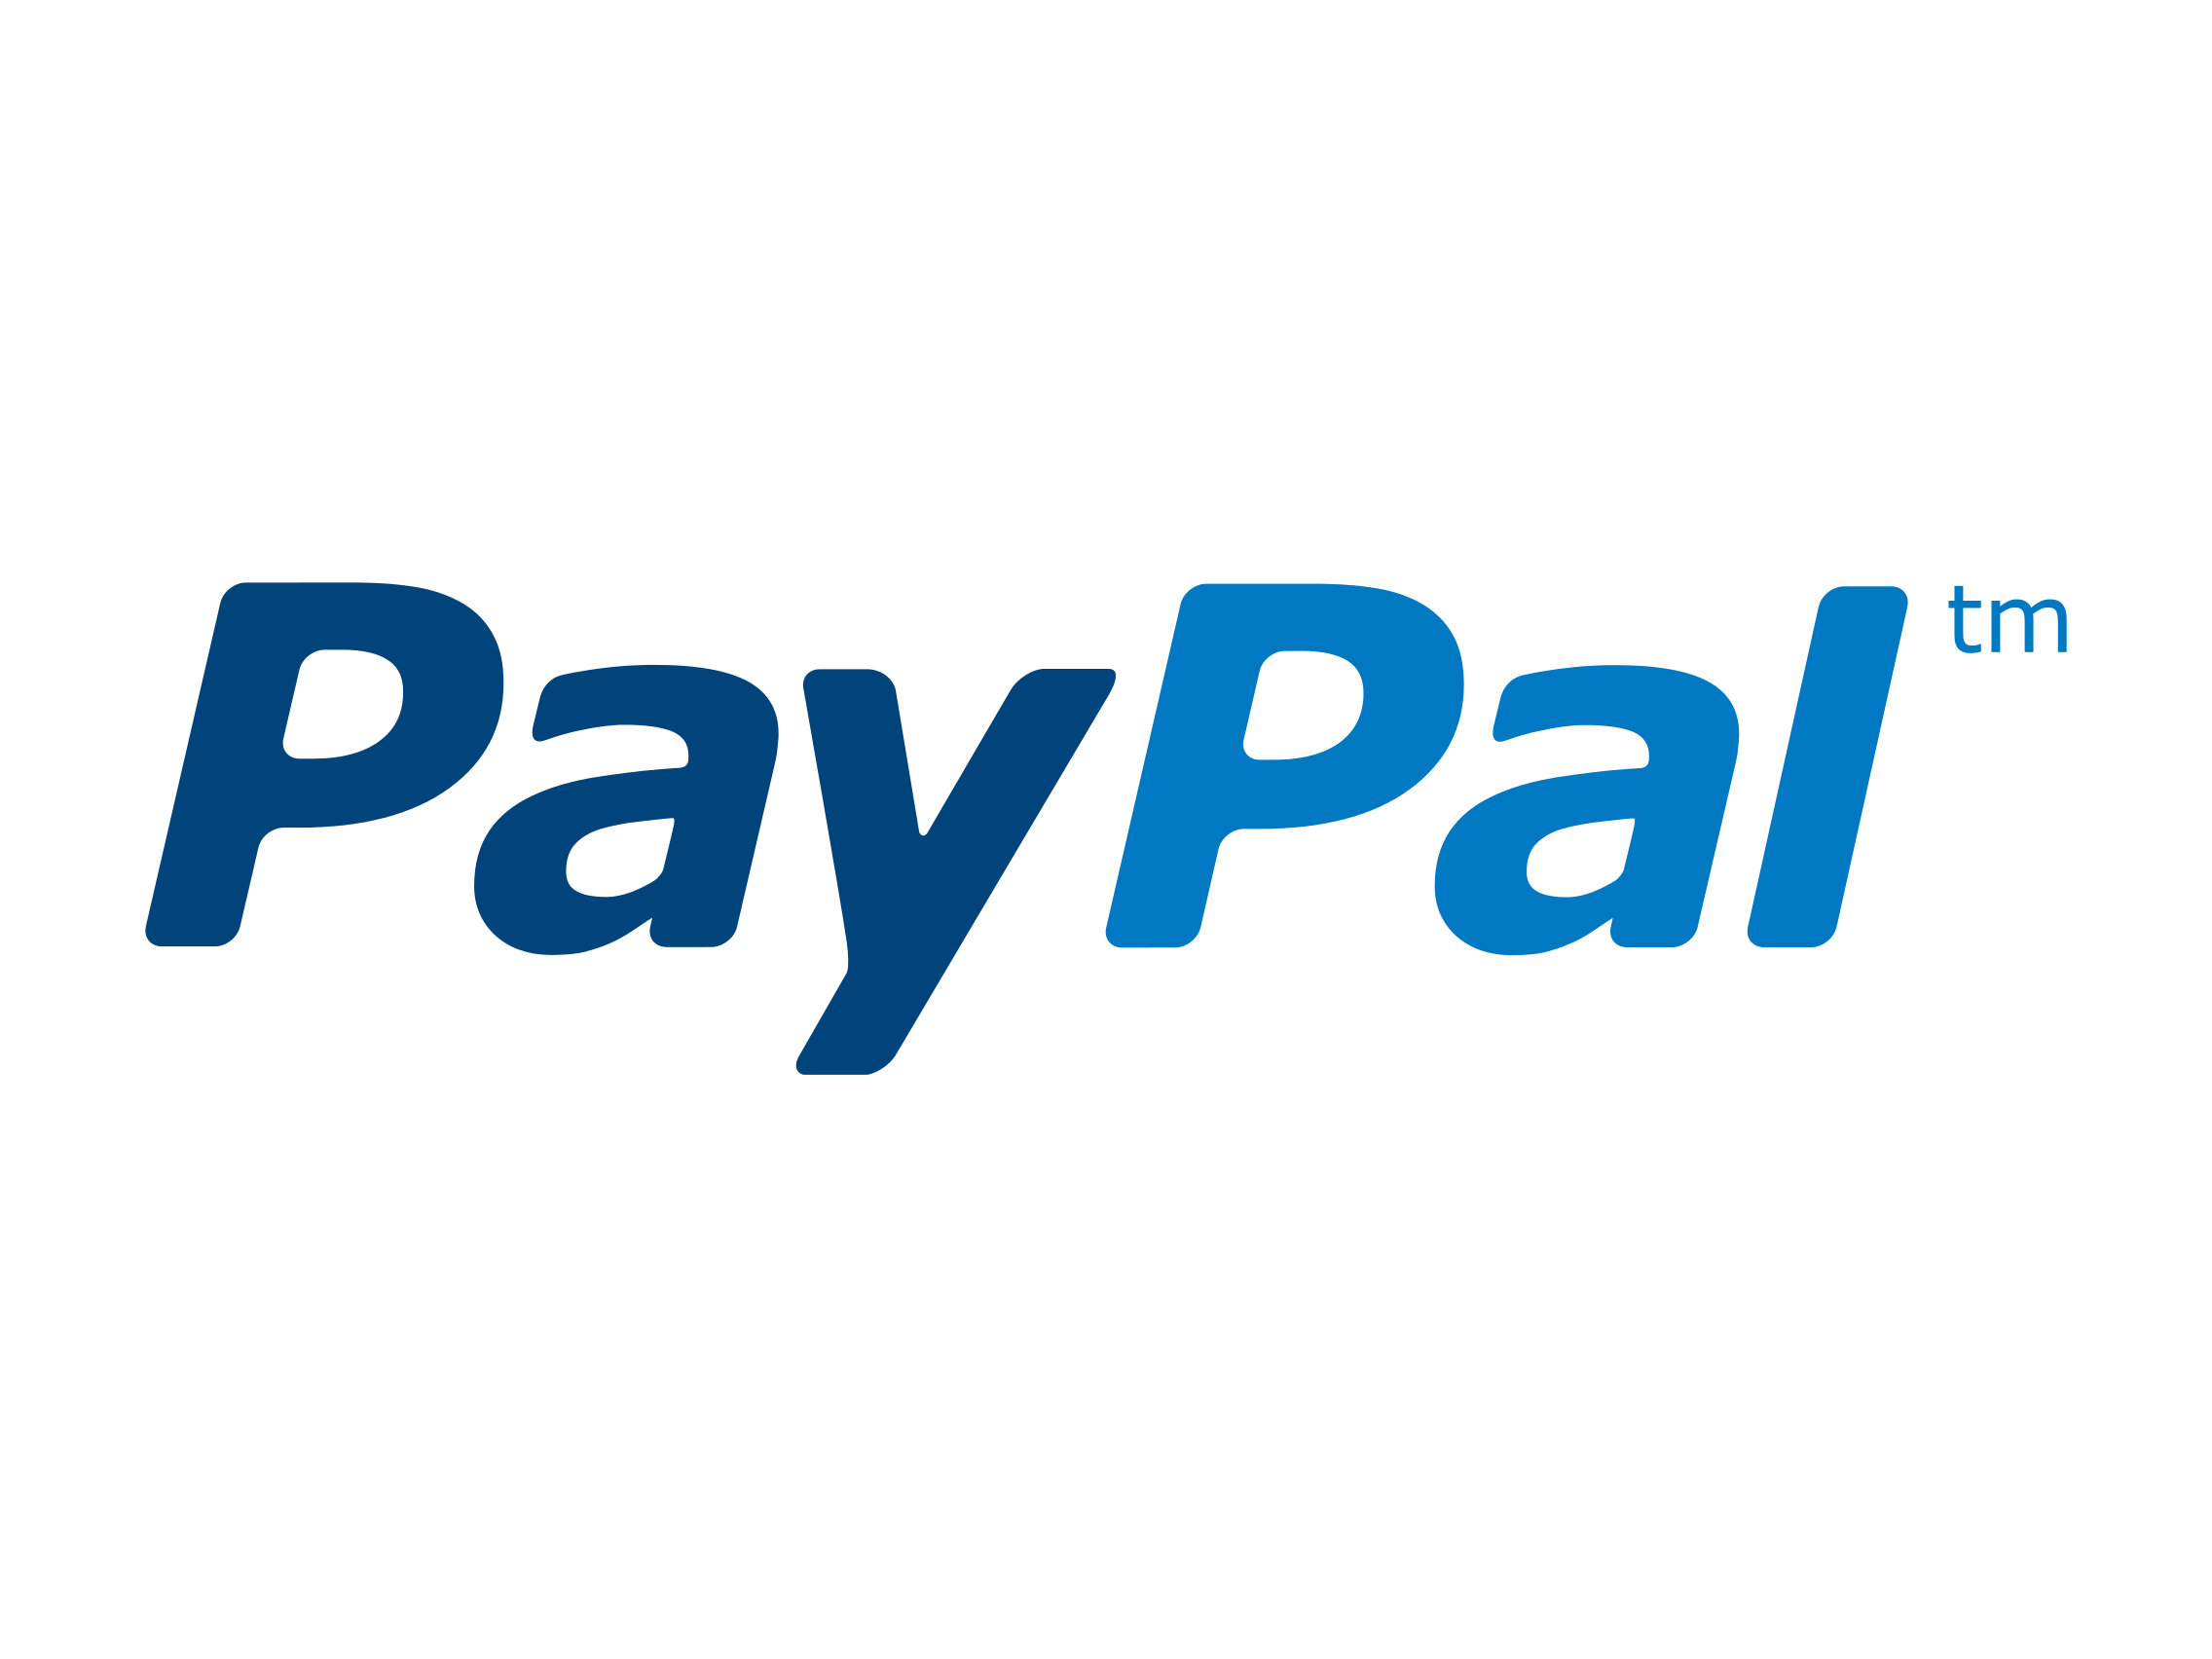 http://luftwaffenmuseum.org/wp-content/uploads/2015/07/PayPal-logo-20071.png